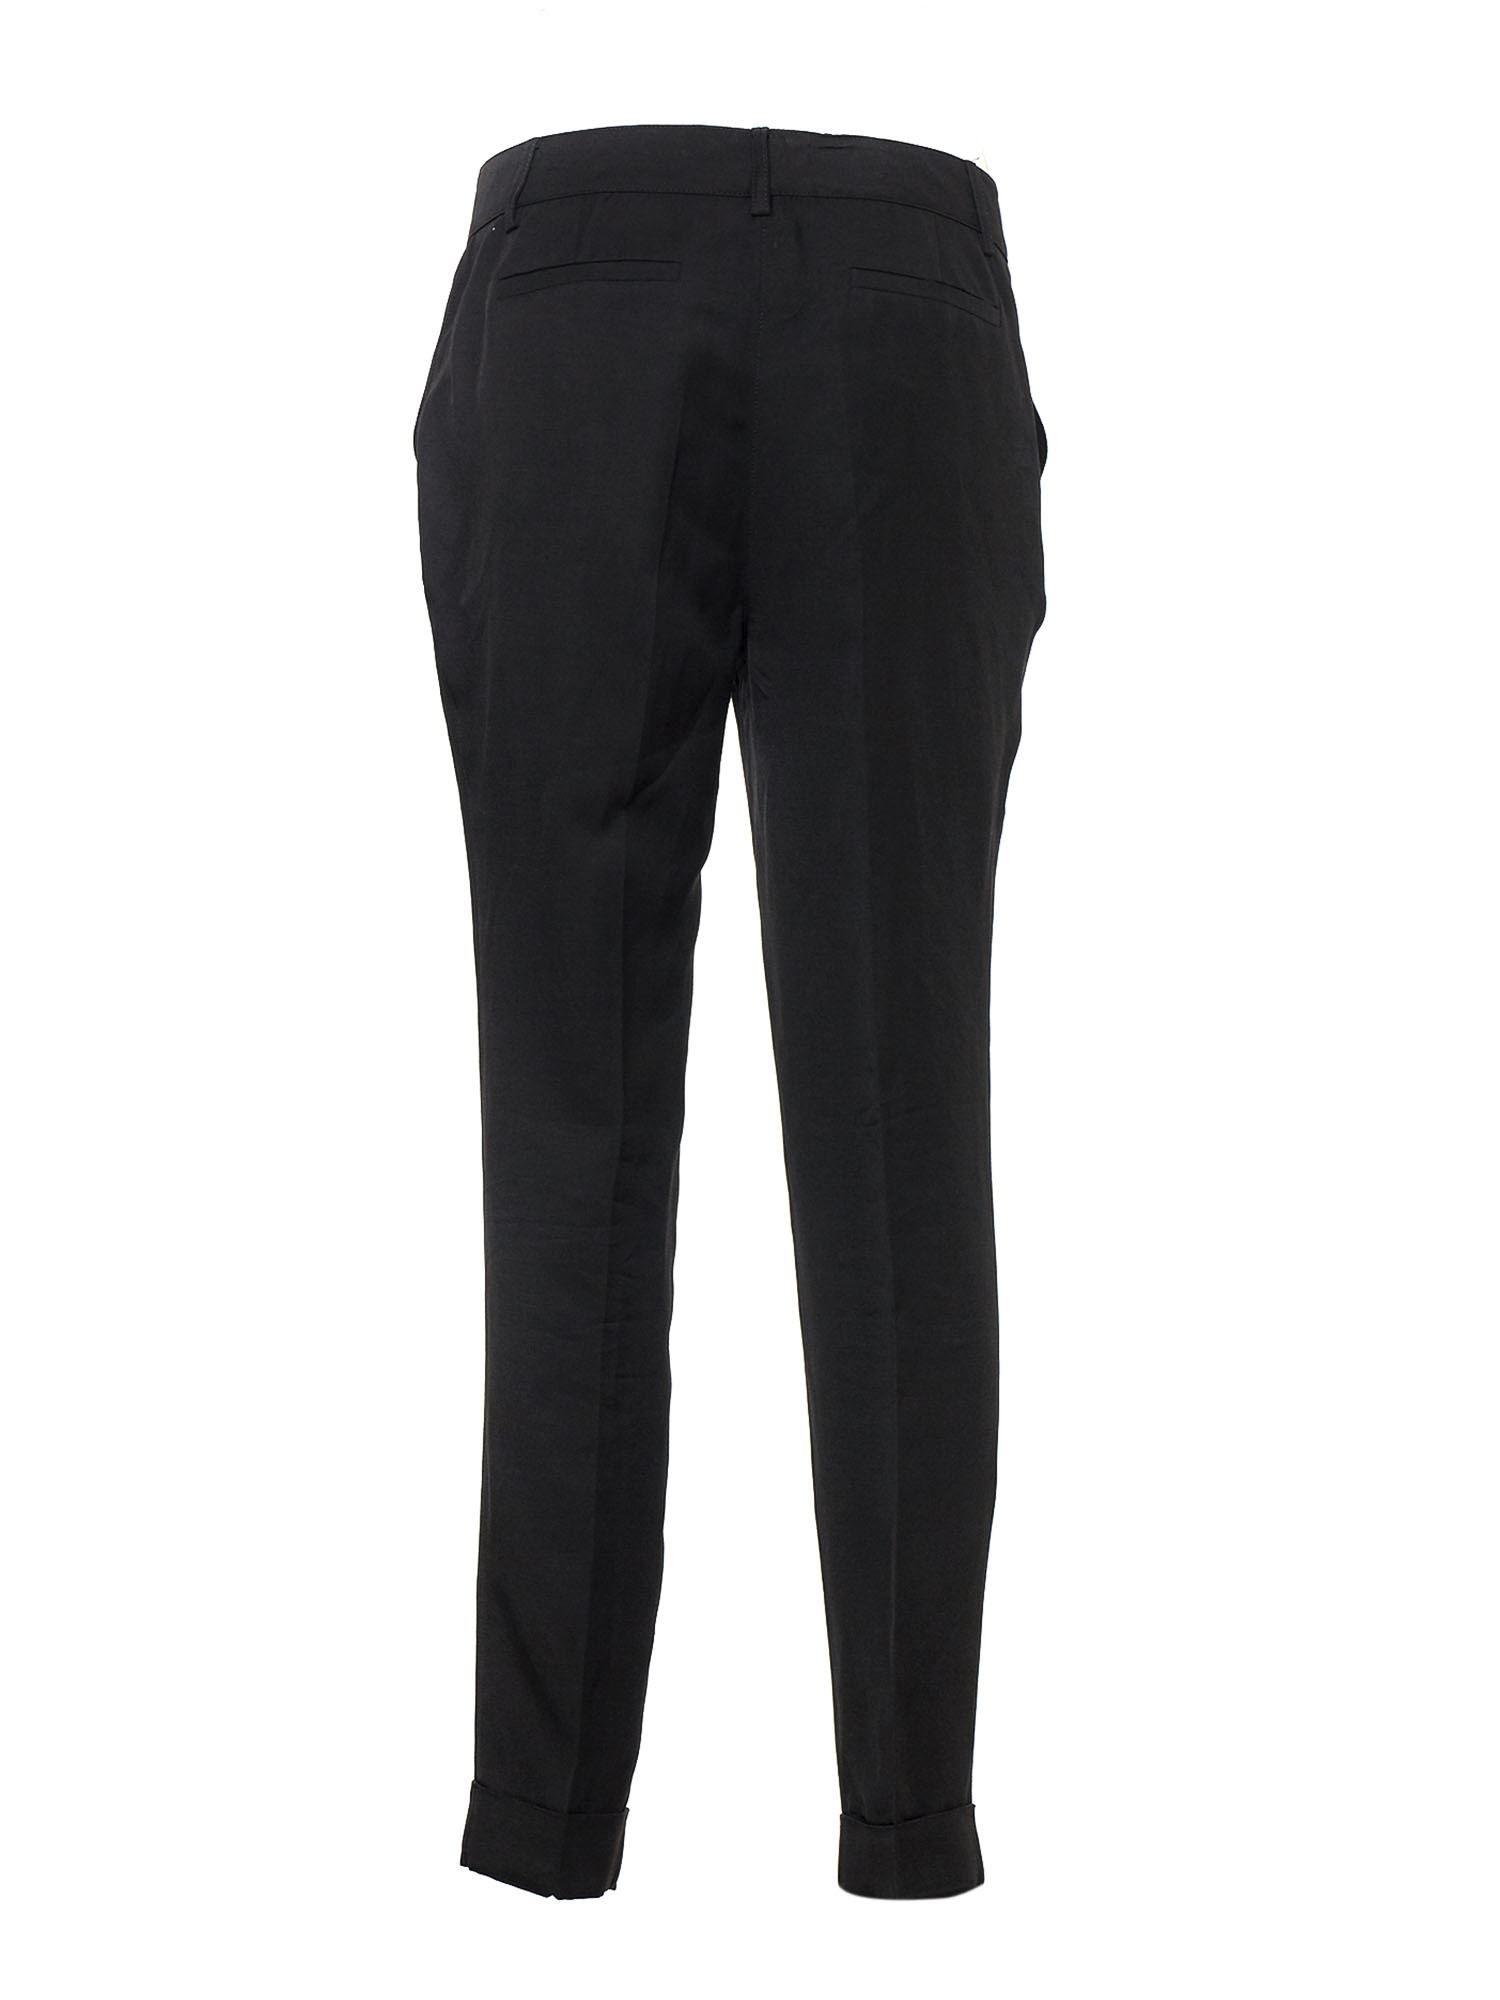 P.A.R.O.S.H. Linens SLIM TROUSERS IN BLACK